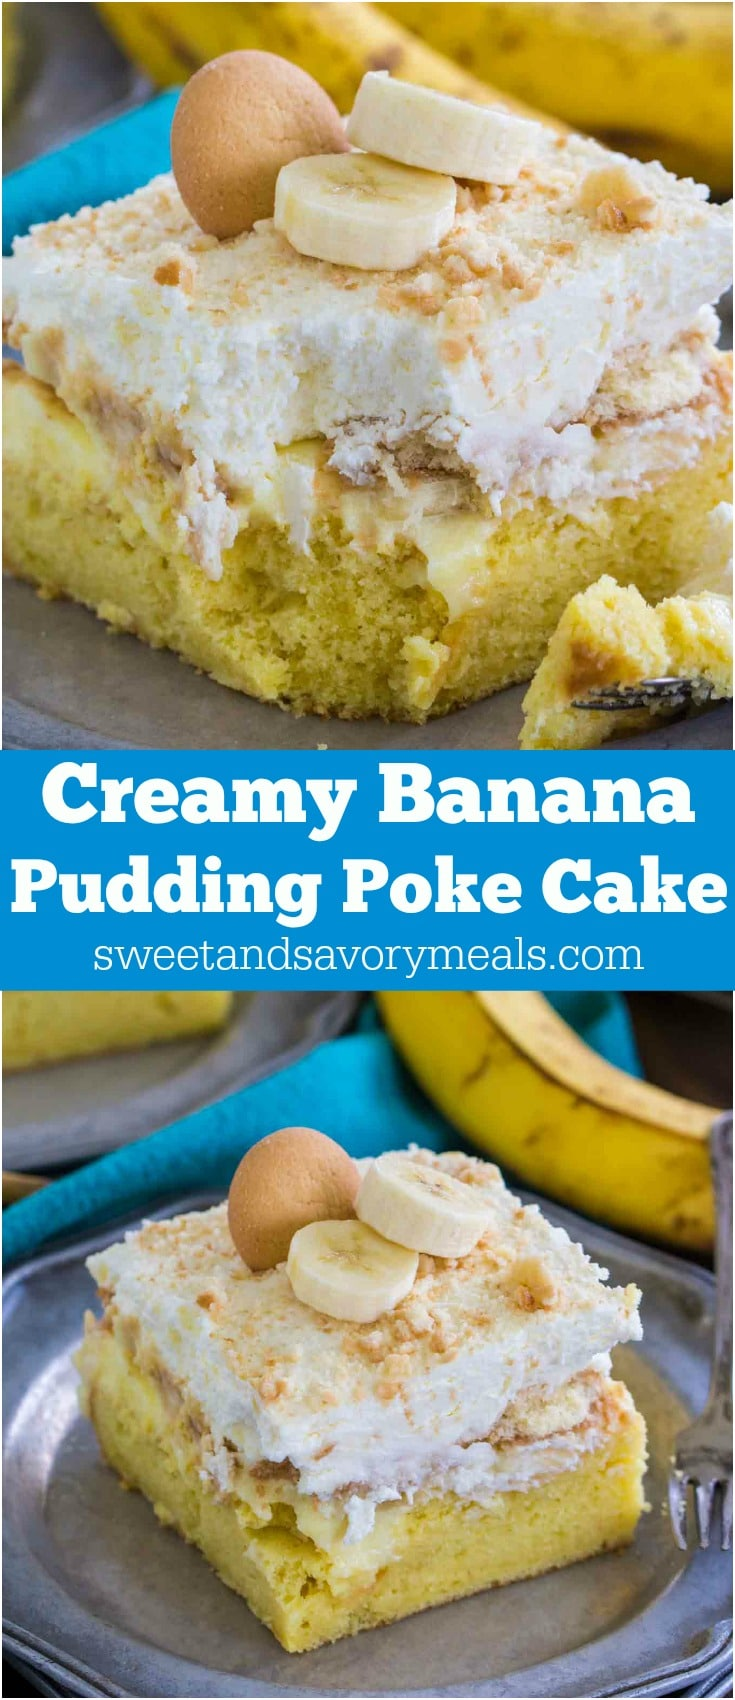 Banana Pudding Poke Cake is one of the easiest and most divine cakes you can make! Incredibly creamy and with lots of banana flavor!